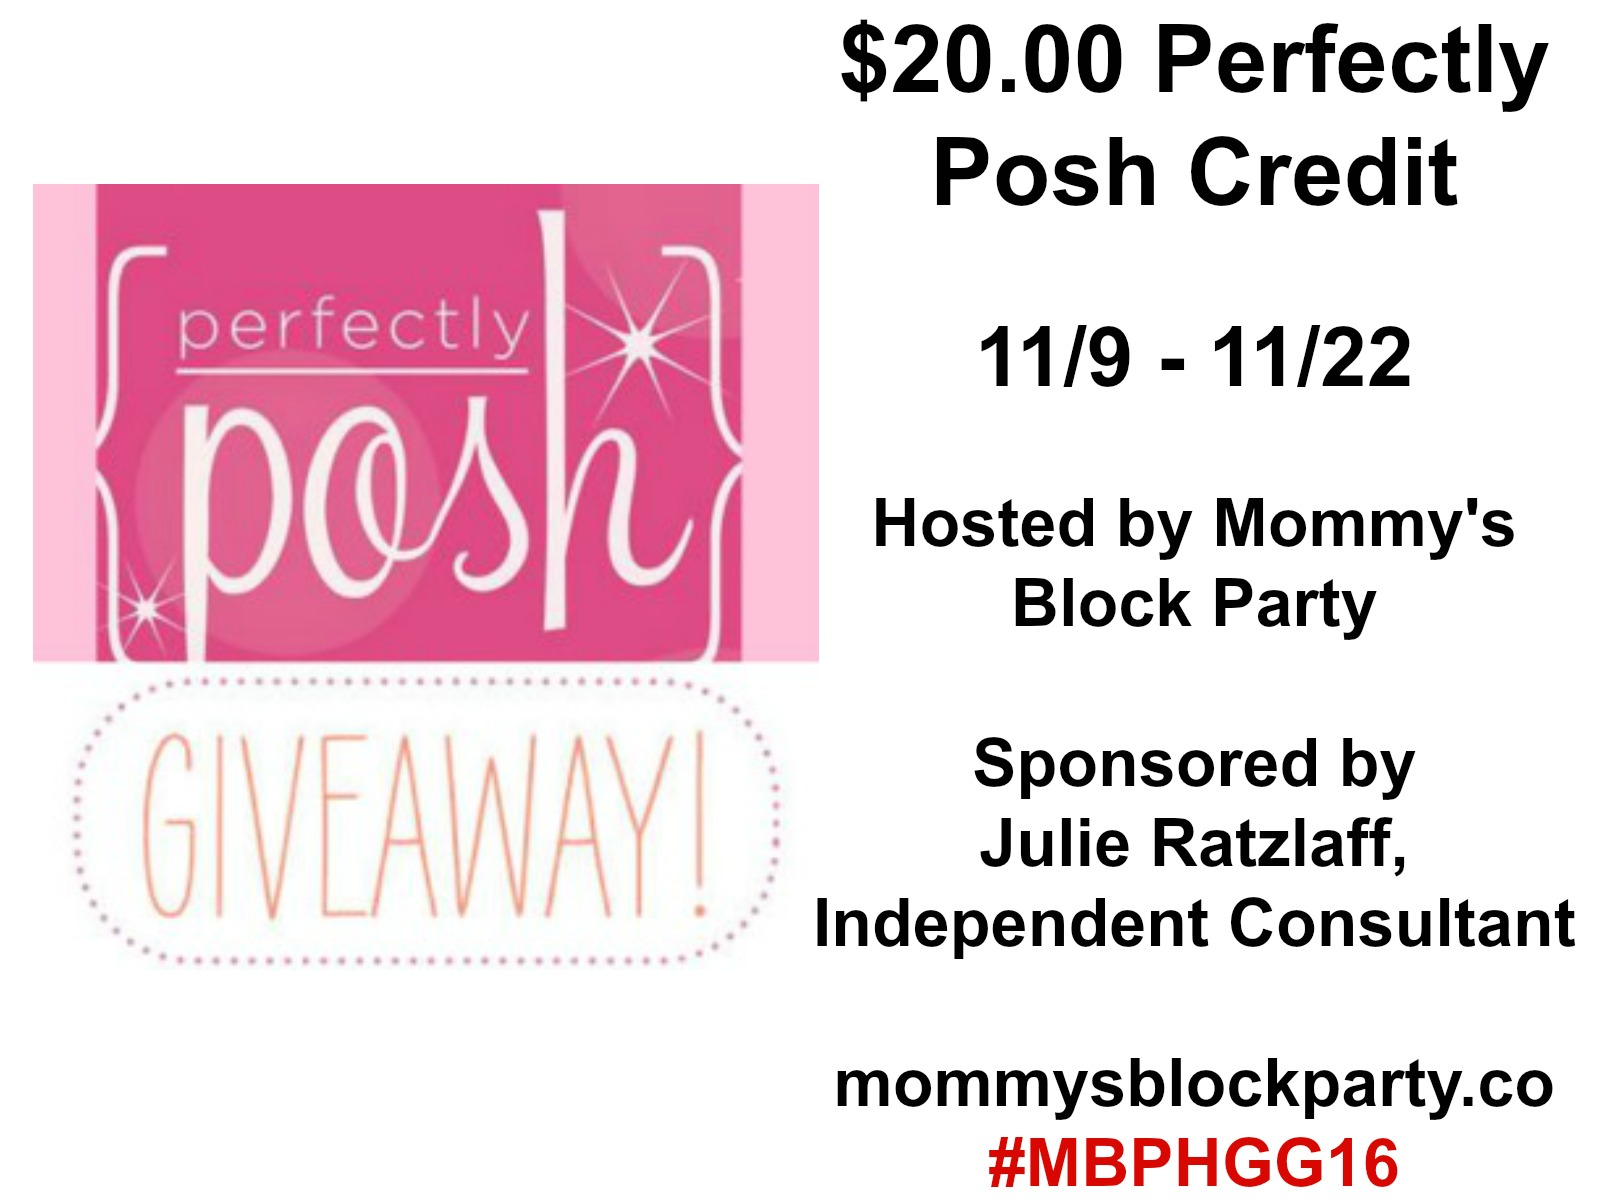 Mommy s Block Party Perfectly Pampered for the Holidays in